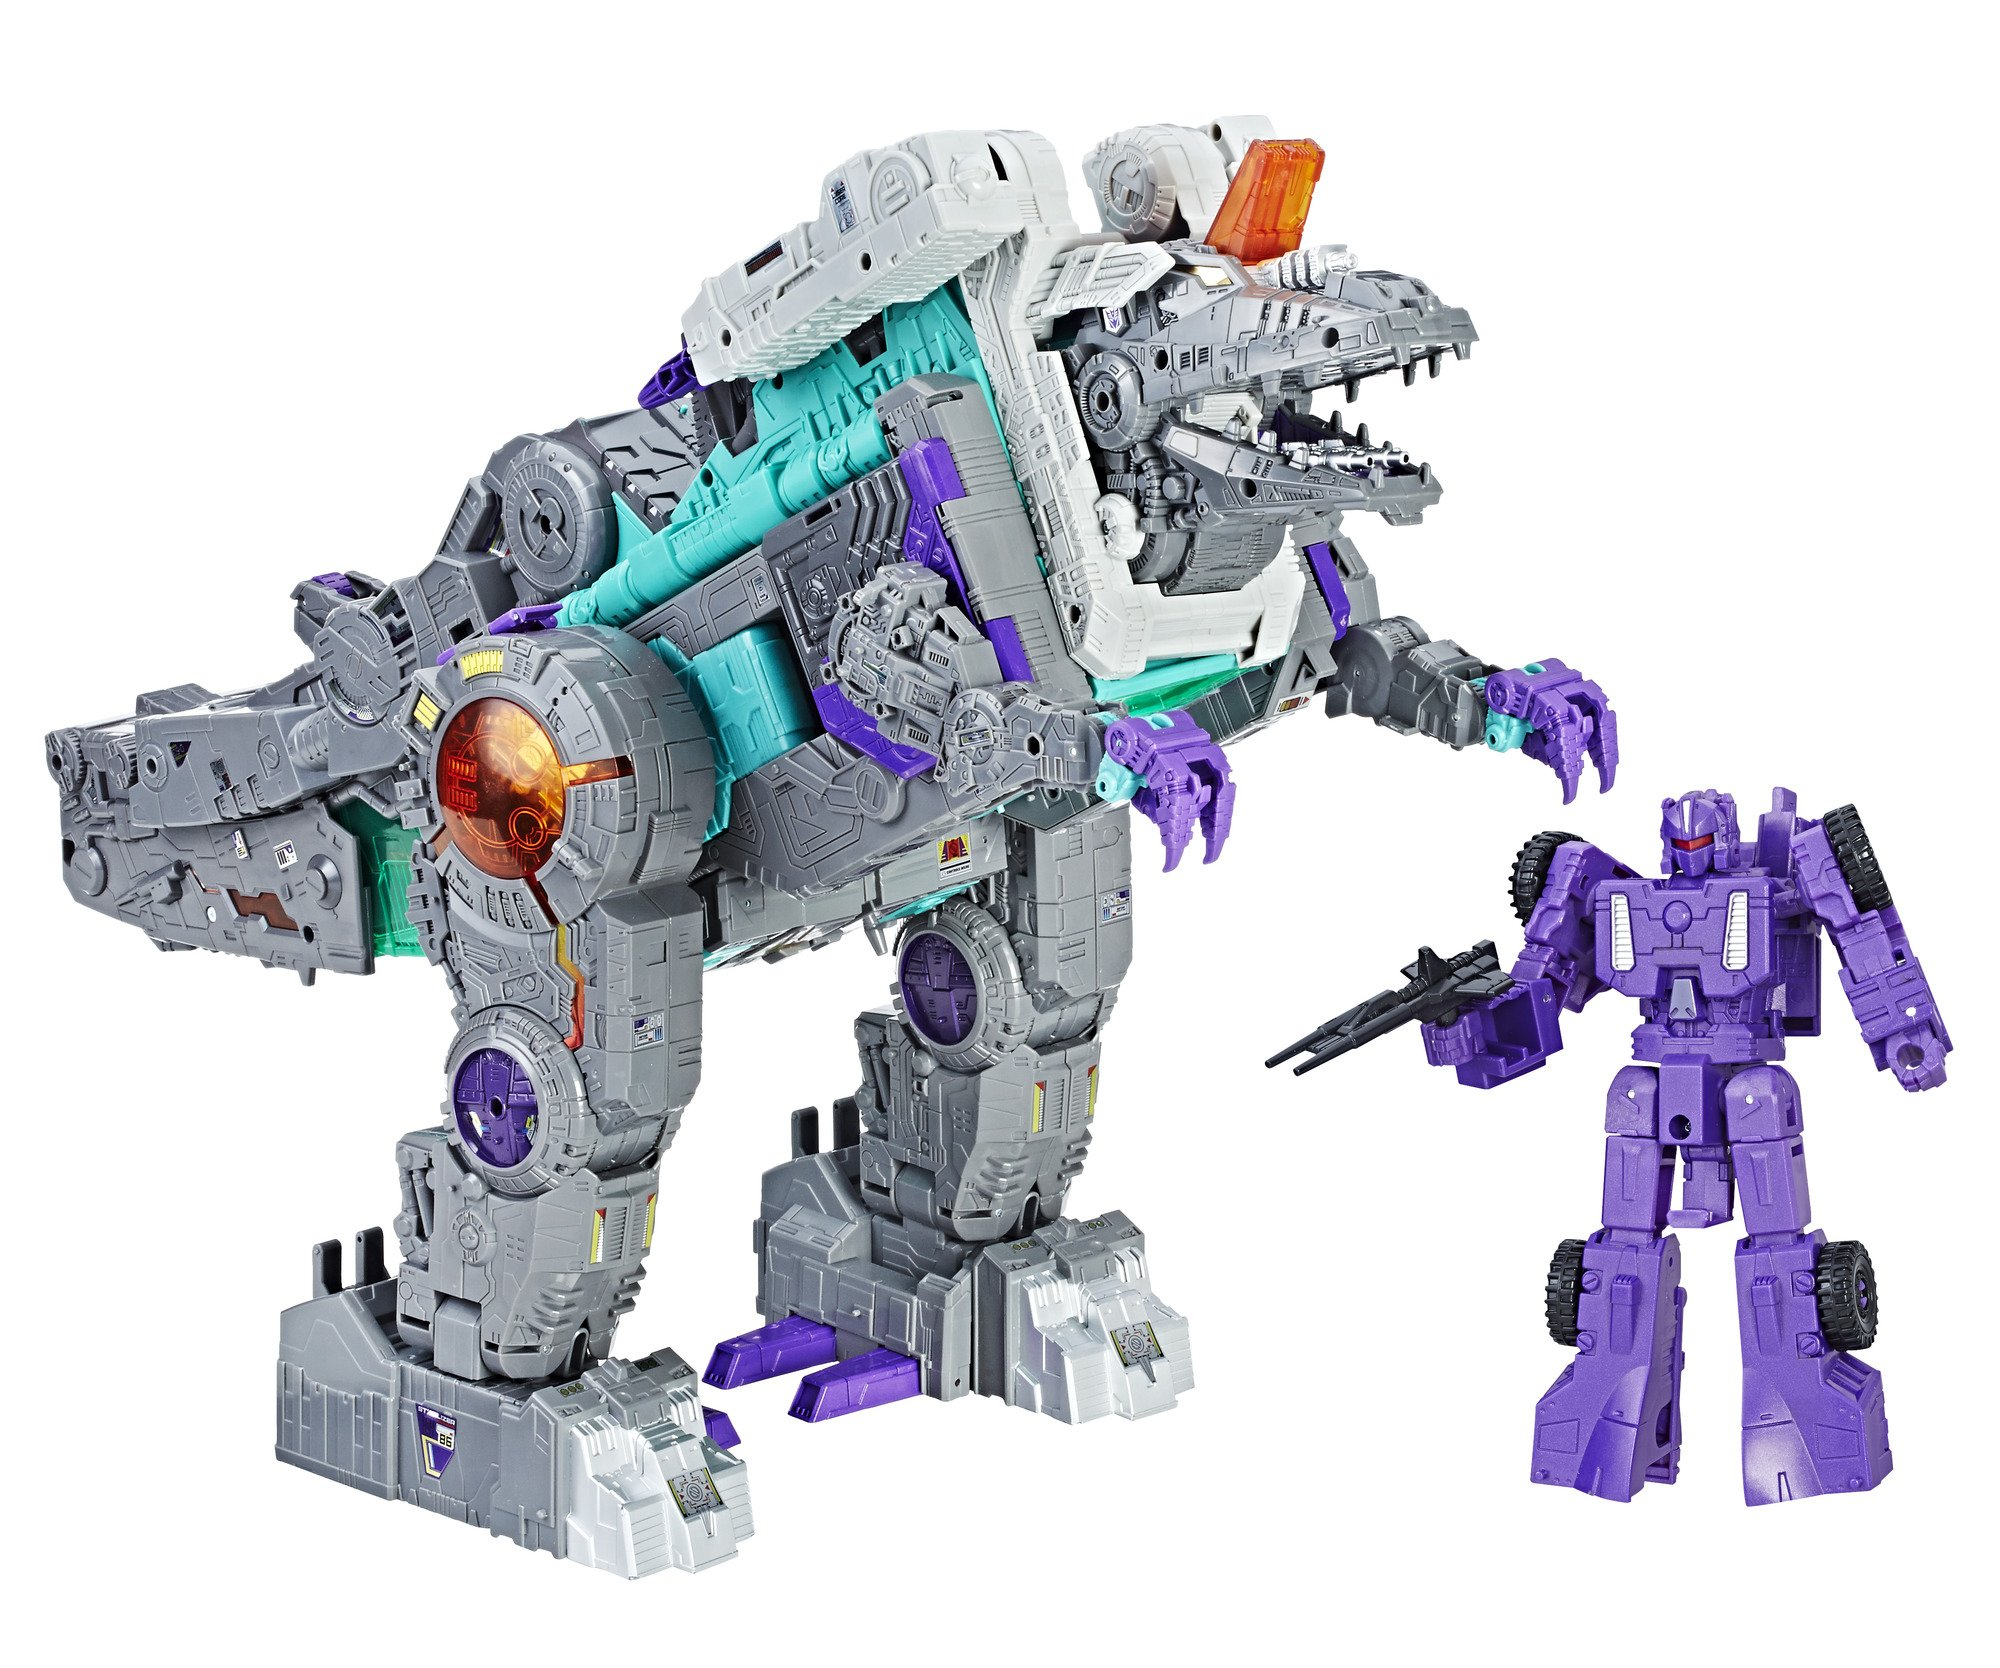 Transformers Generations Titans Return Titan Class Trypticon by Transformers (Image #4)